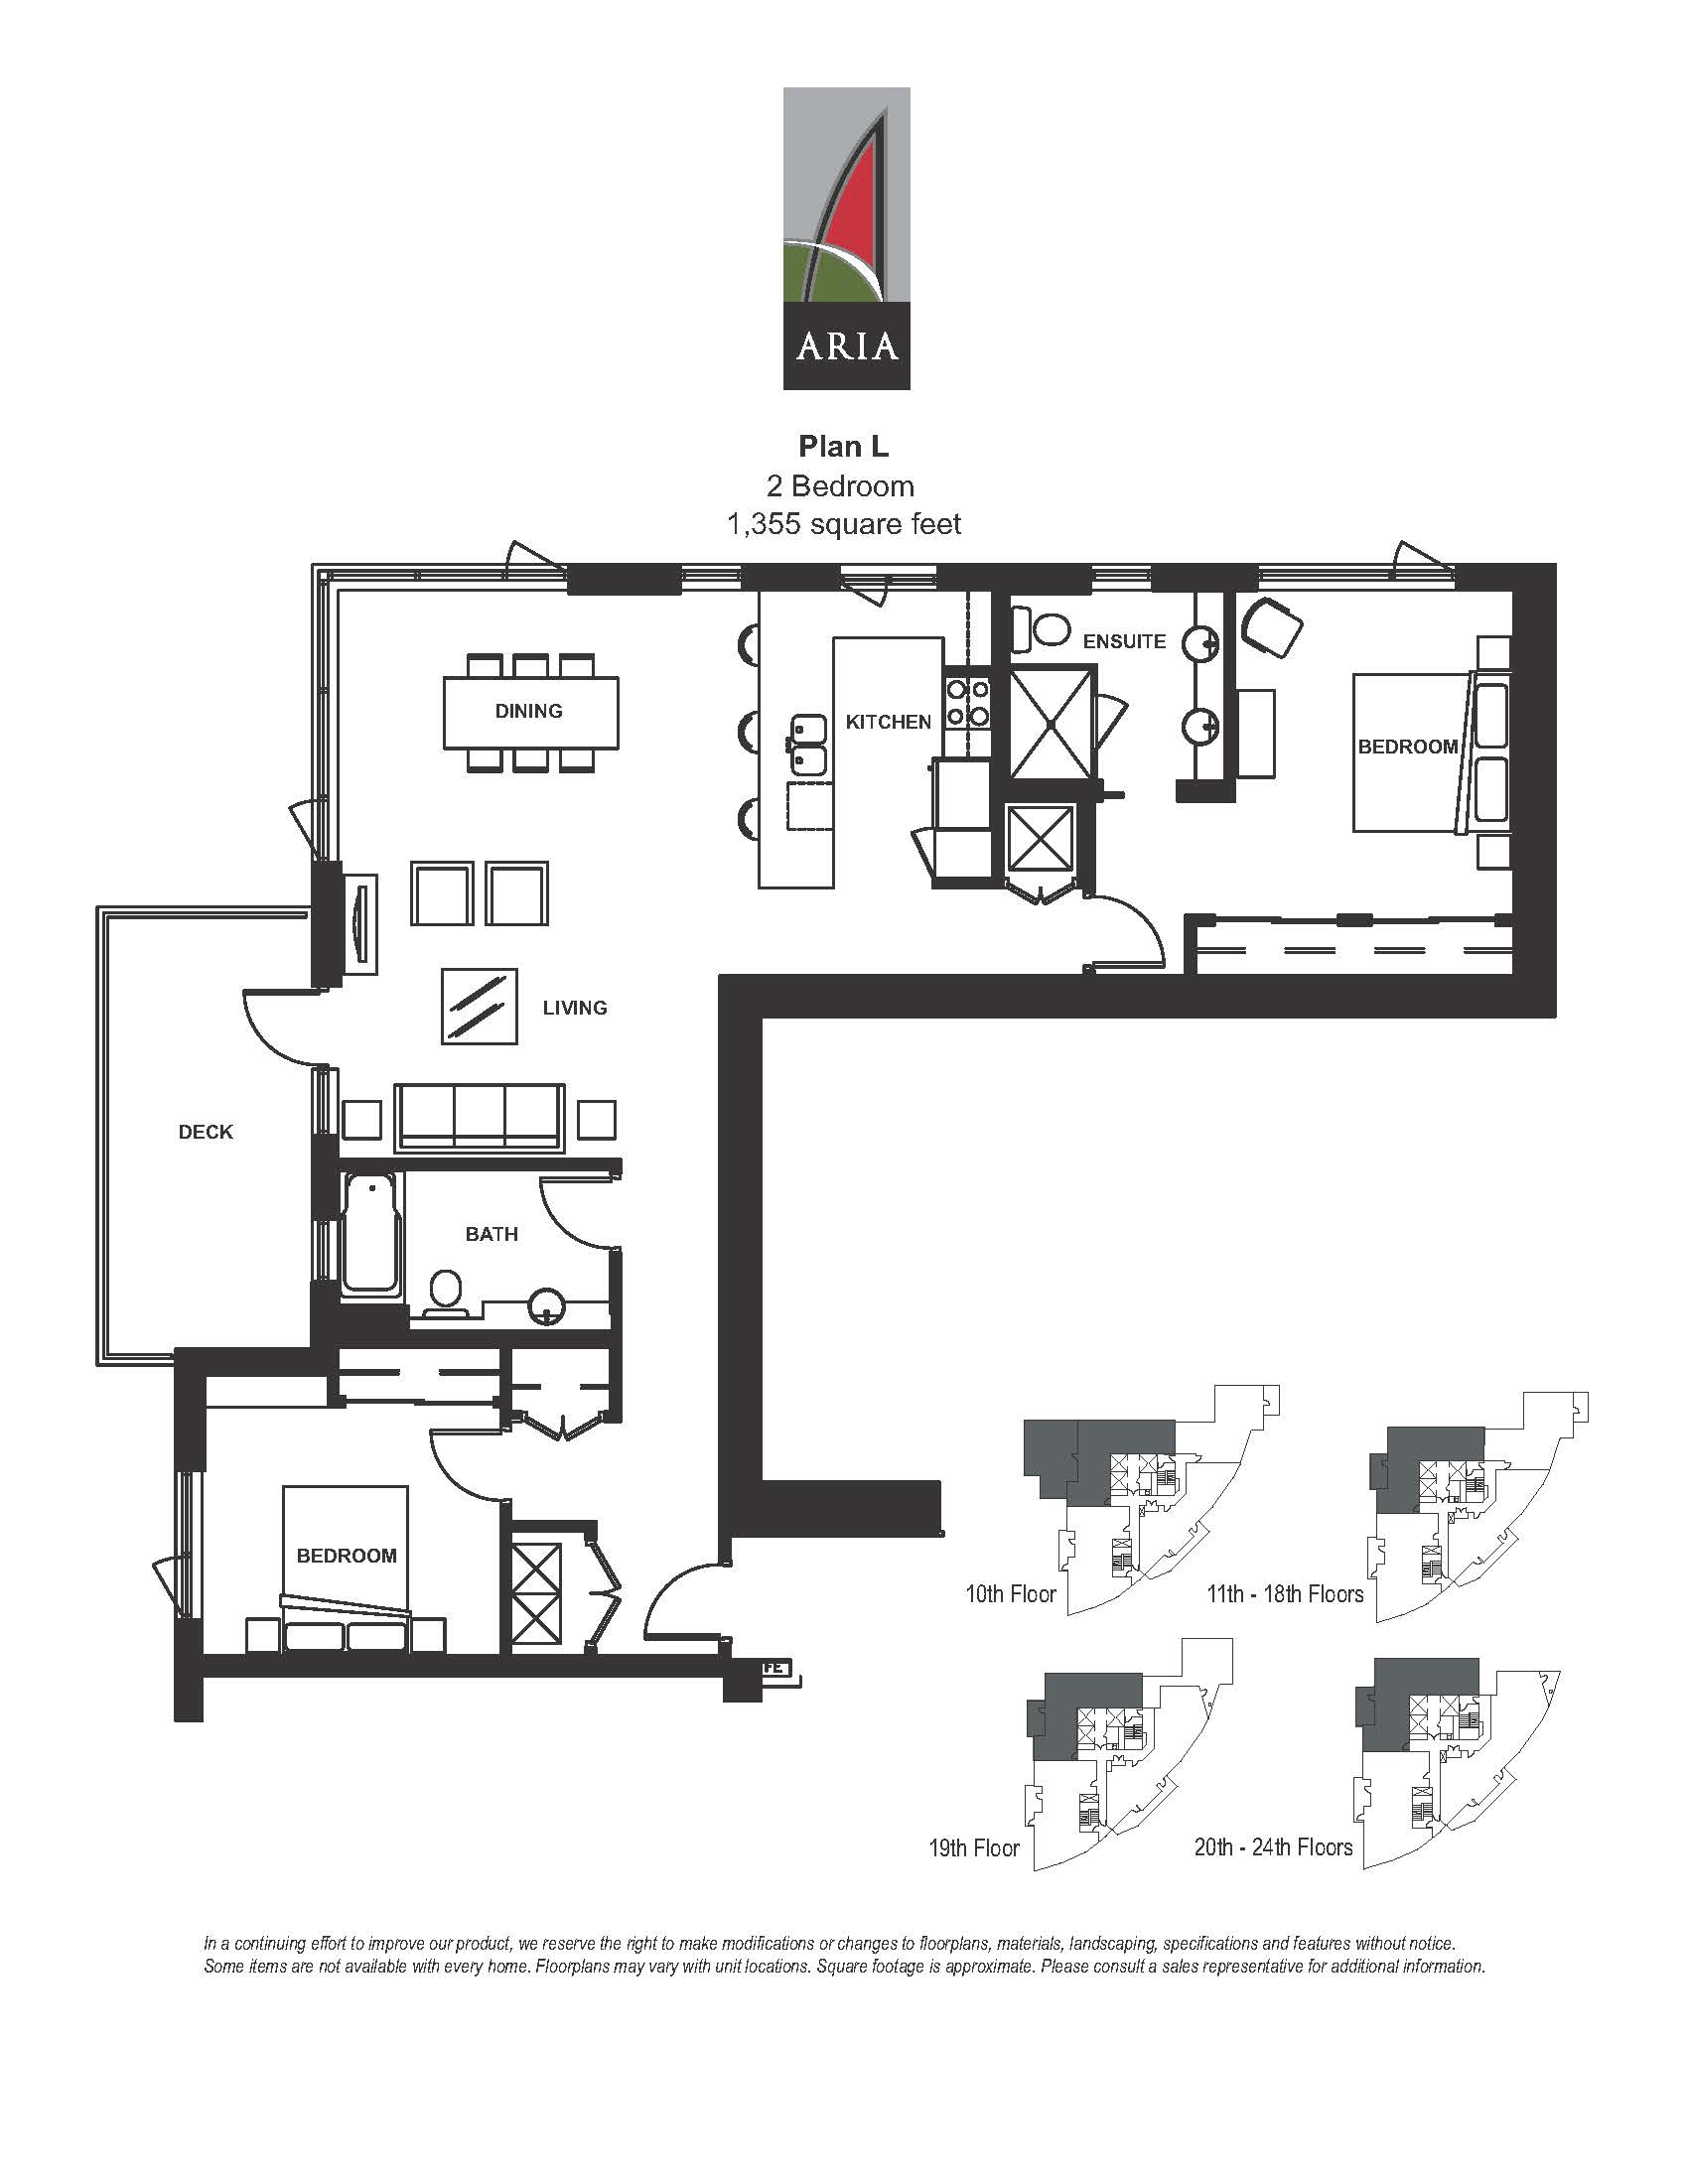 Aria 2 Bedroom - Plan L